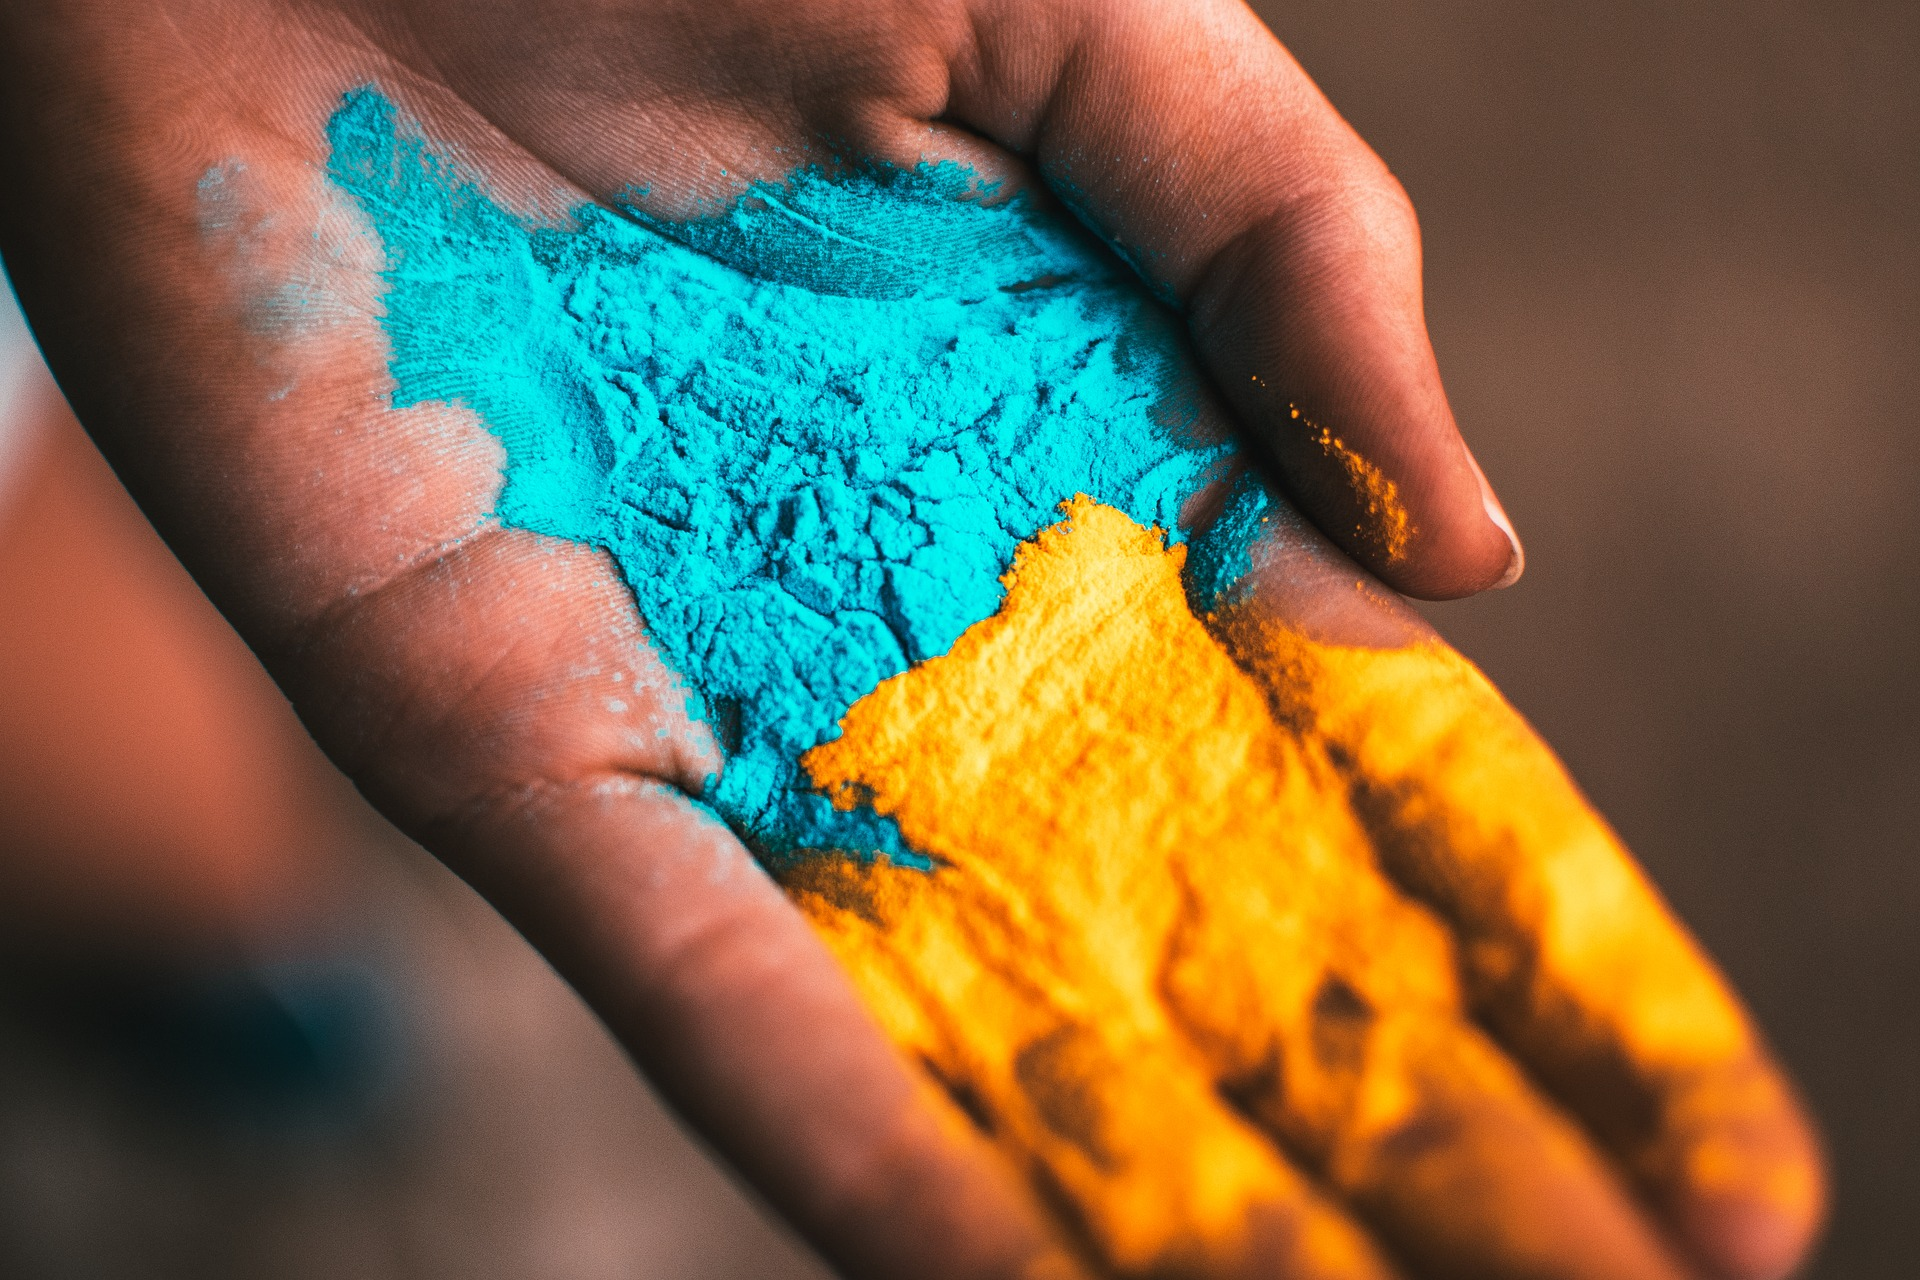 Image: hand holding yellow and blue pigment powder, this pigment works similarly to the color of our skin